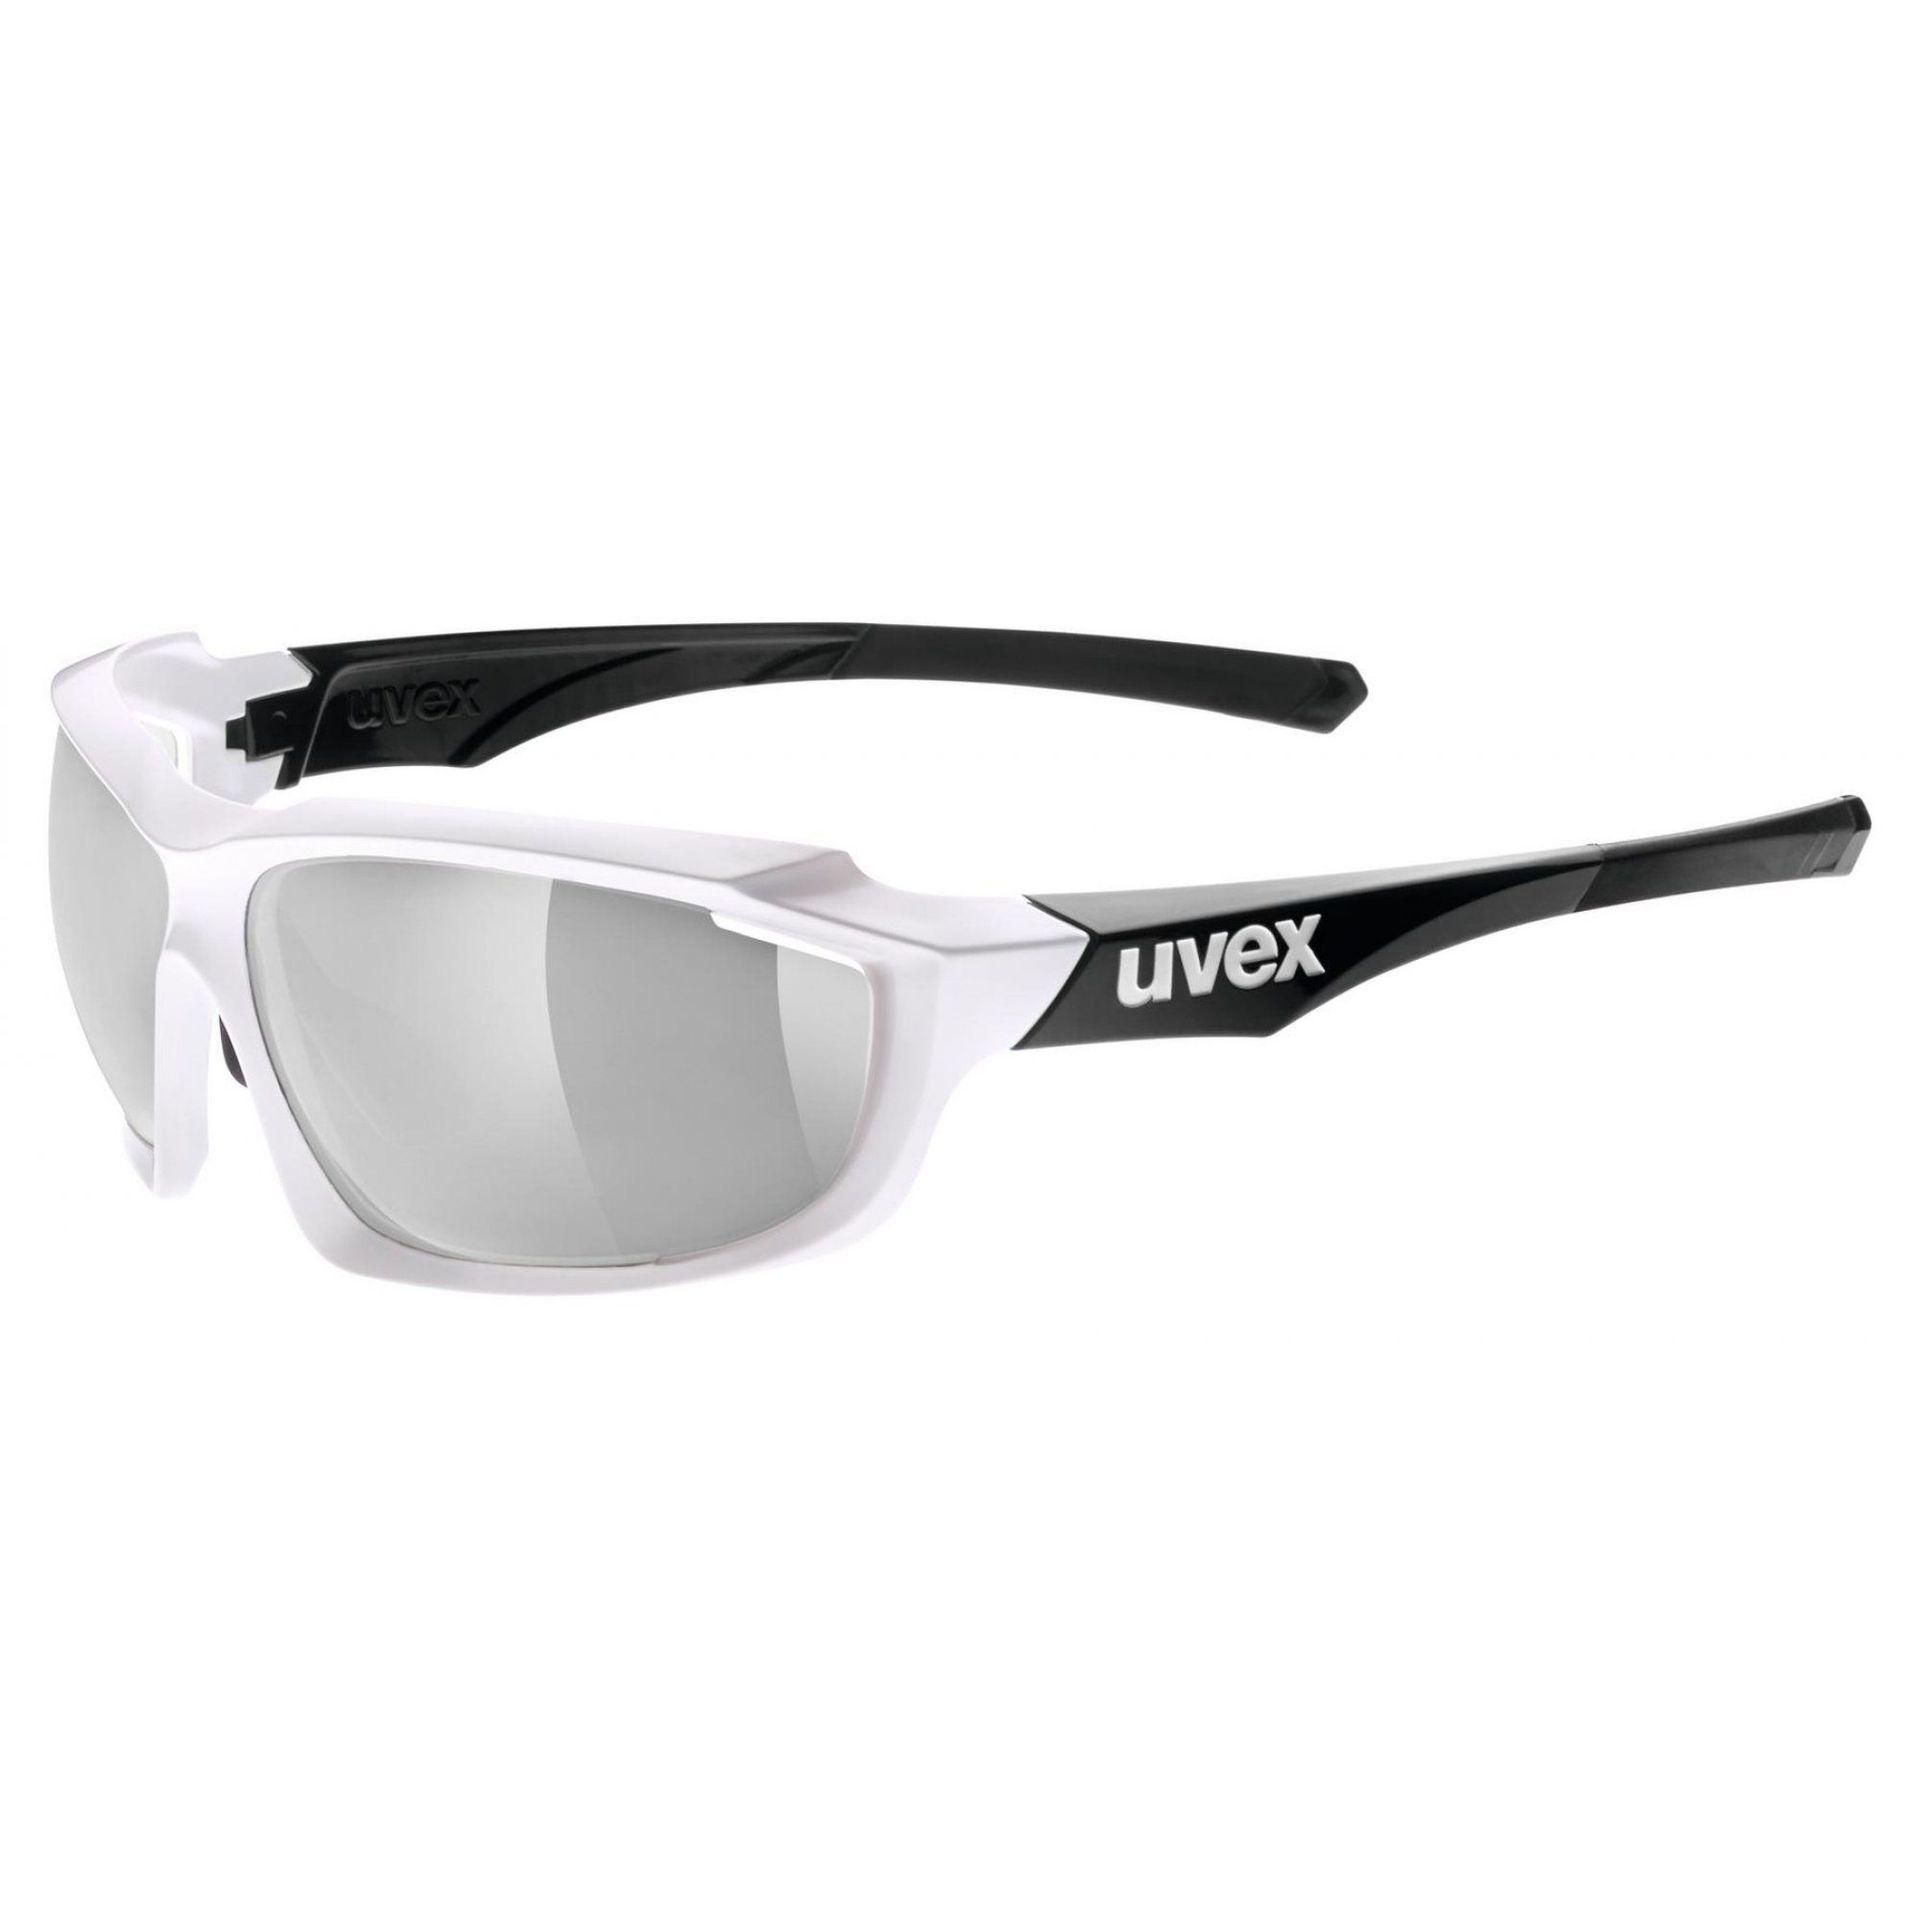 OKULARY UVEX SPORTSTYLE 710 VM WHITE BLACK